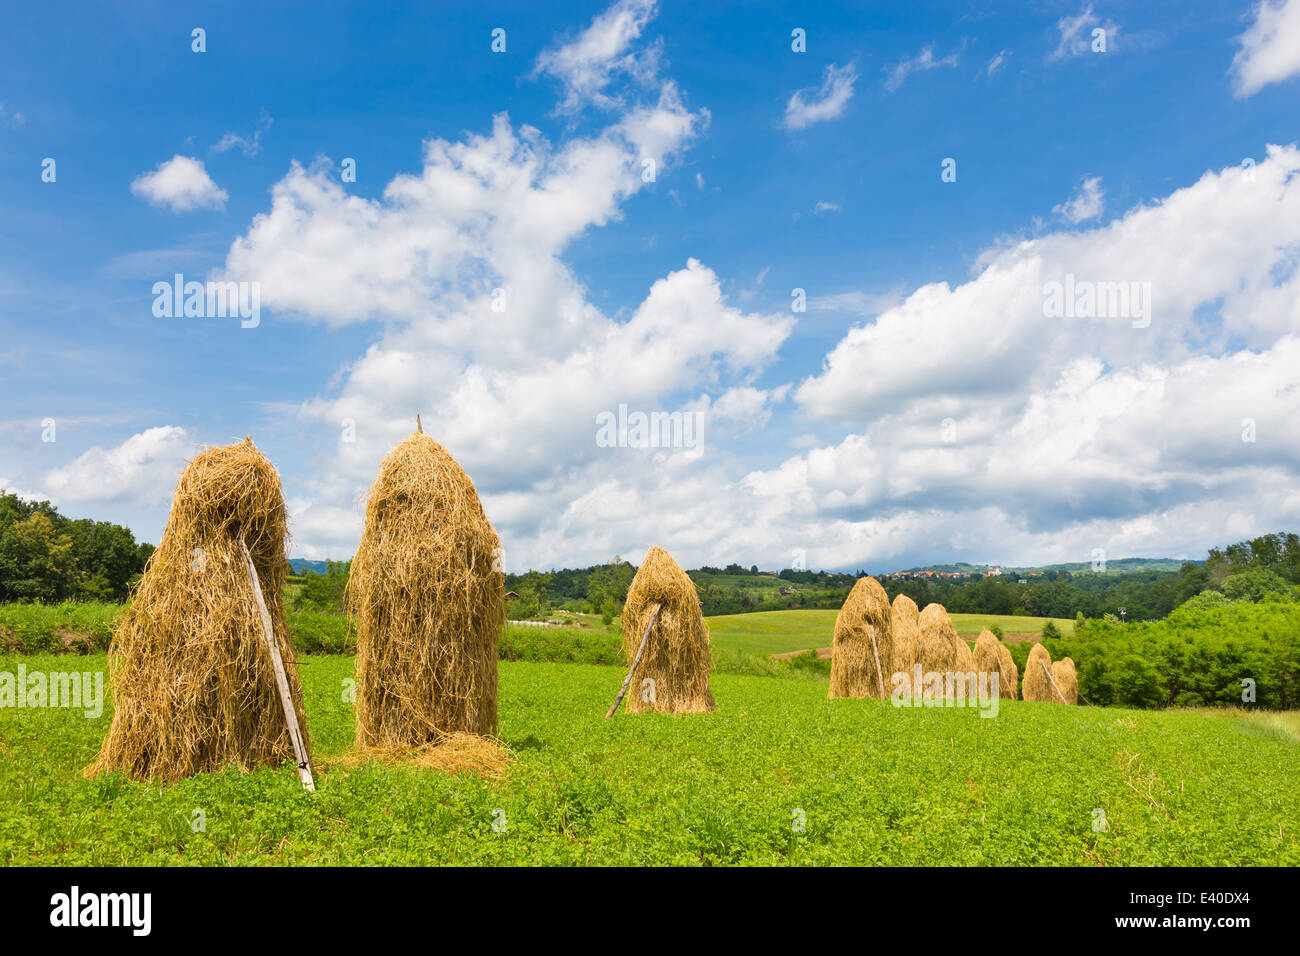 Traditional hay stacks on the field. - Stock Image